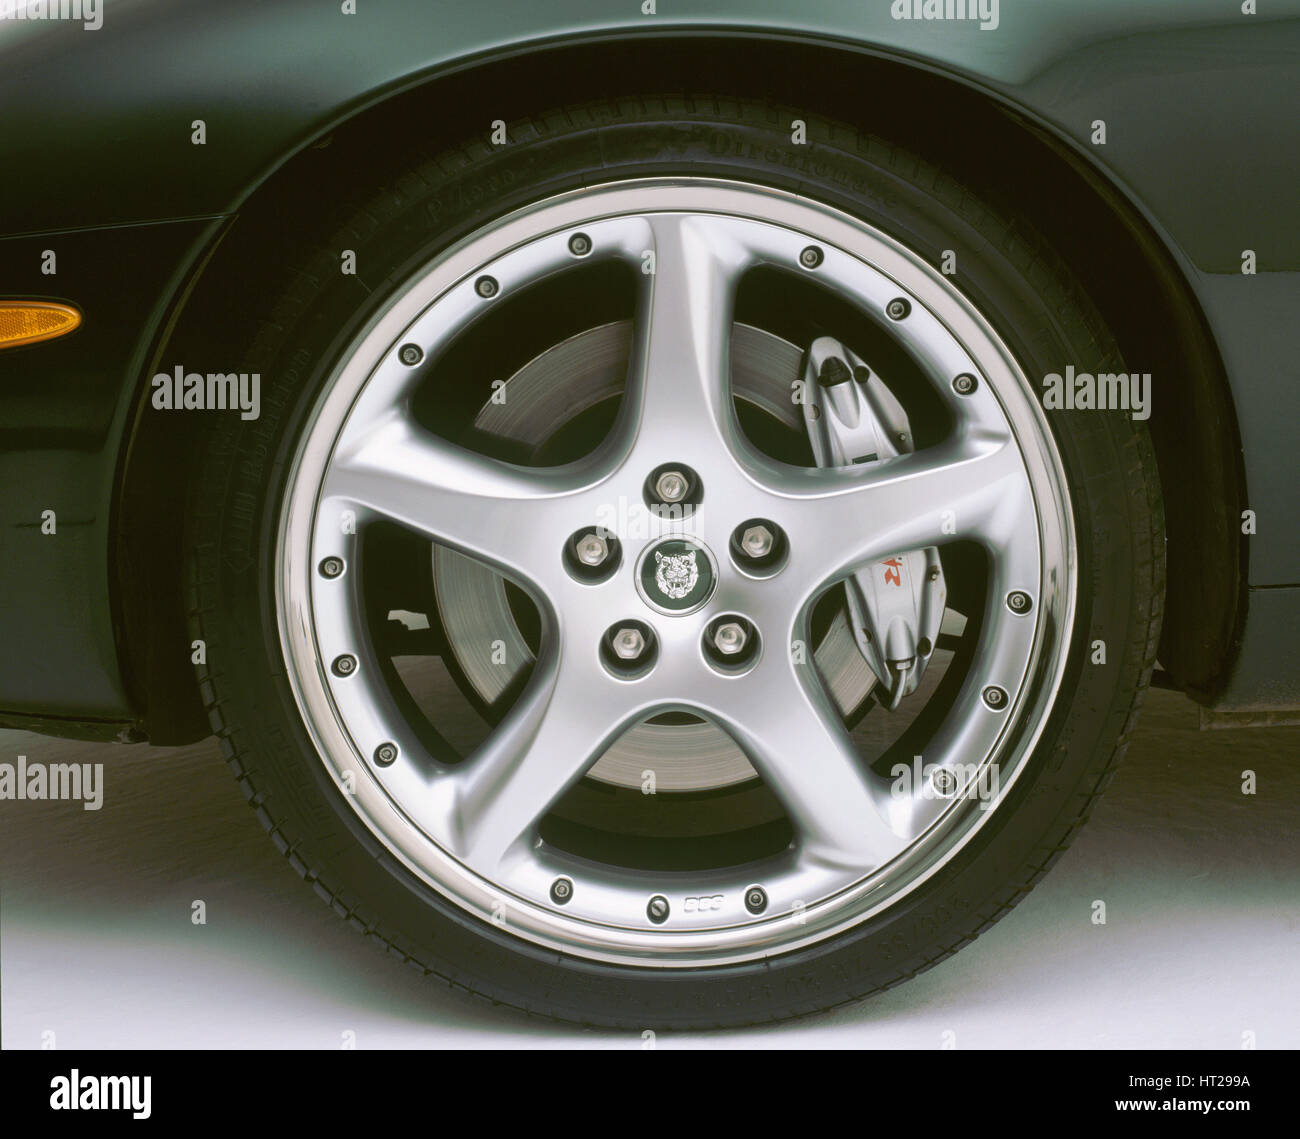 2002 Jaguar XKR alloy wheel. Artist: Unknown. - Stock Image